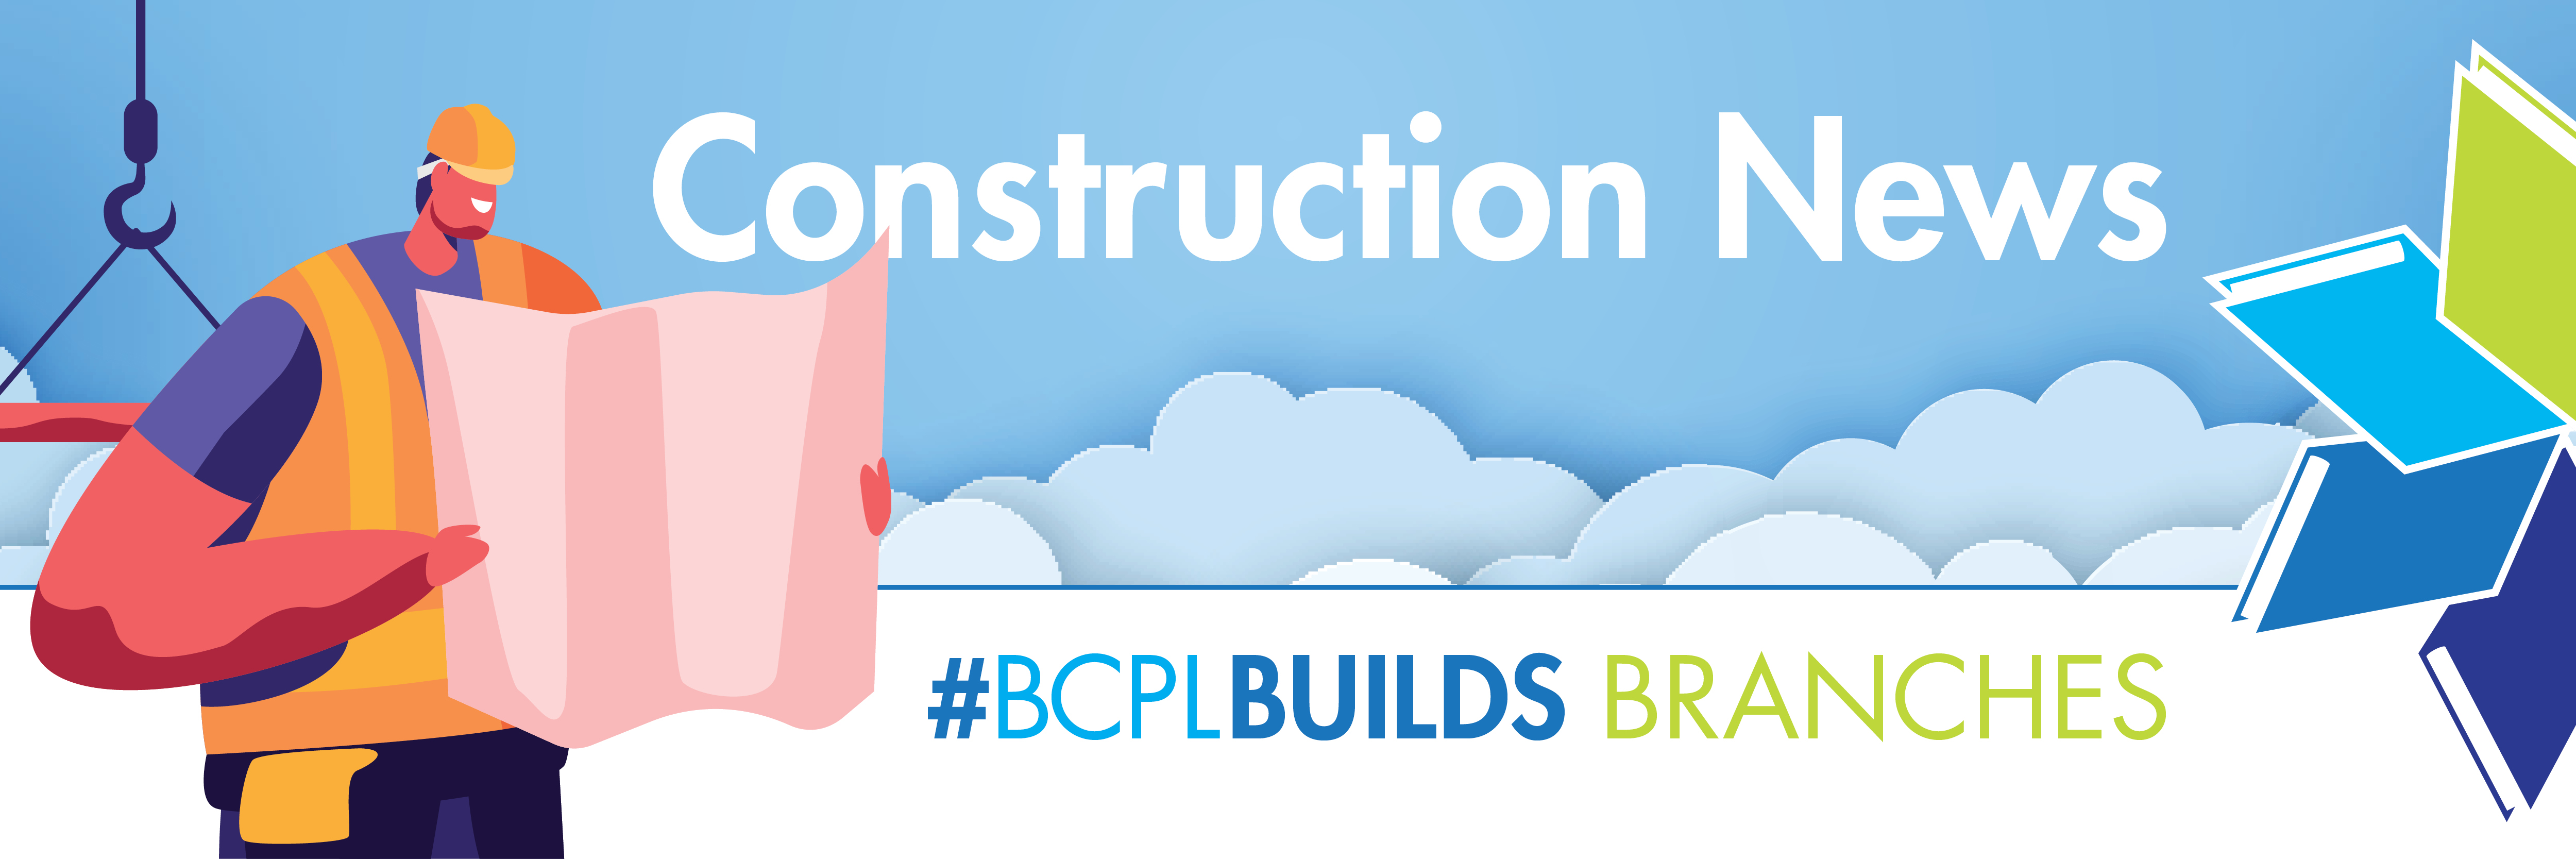 Construction news slide: #BCpLBuilds Branches with construction worker character looking at building plans